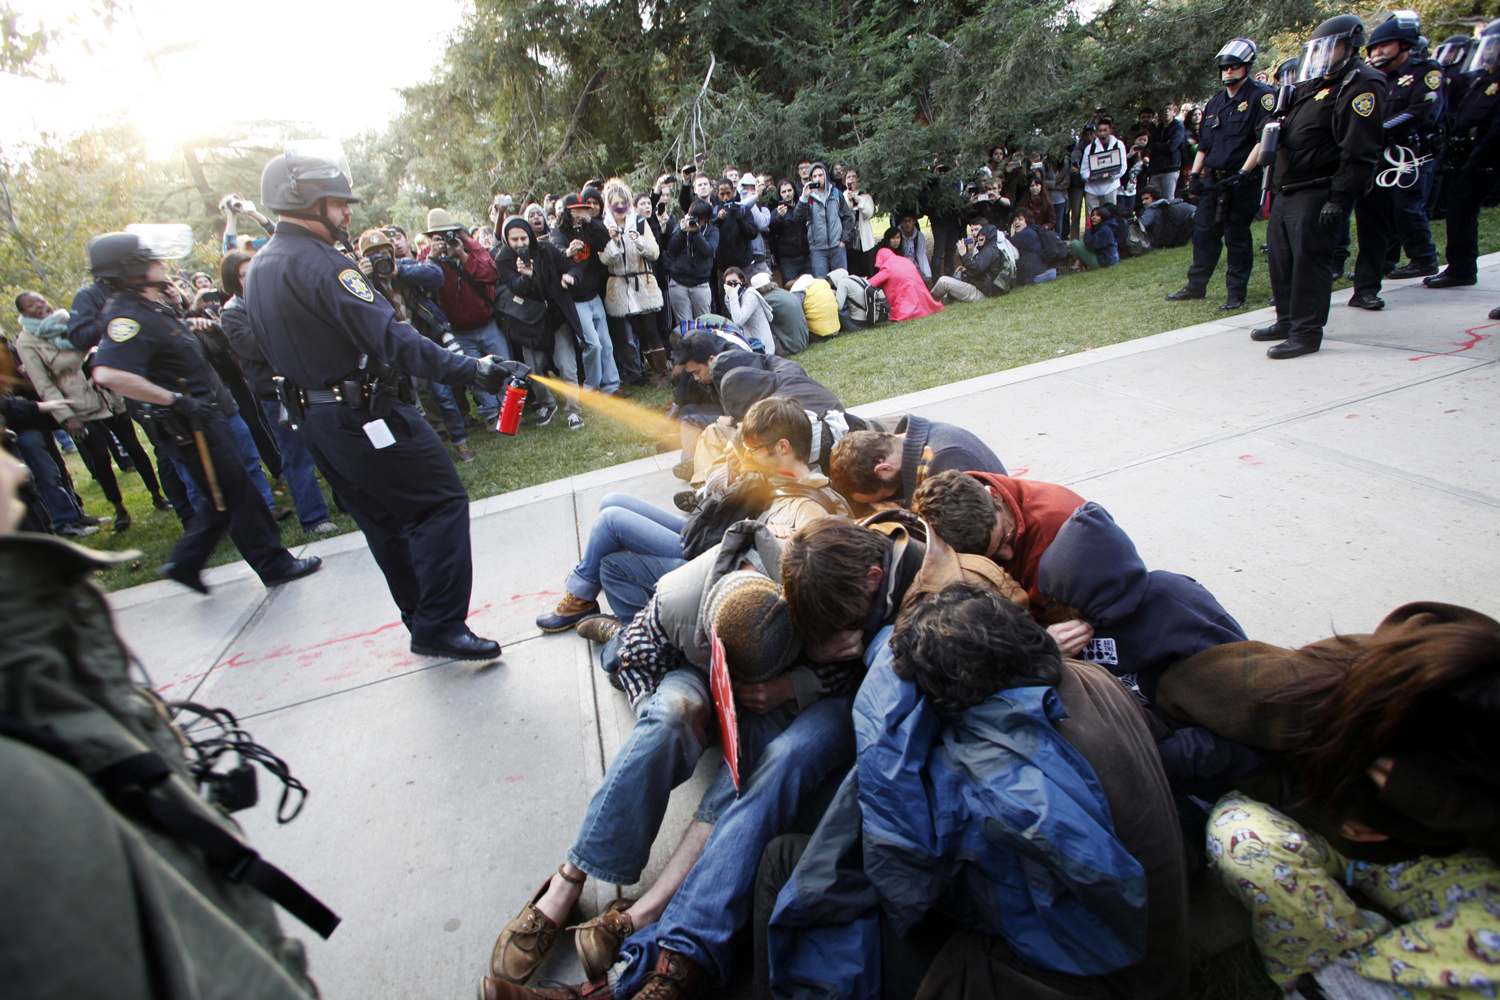 On Friday 18 November, Campus police at the University of California at Davis nonchalantly used pepper spray against students who sat peacefully on the school's quad to protest tuition increases. Online video and stills show the officers standing over the protesters and spraying them repeatedly at point blank range.  It was such an                               intense feeling. It felt like acid was being poured on our faces  said 21-year-old student Sophia Kamran who was among those targeted. Two officers involved in the incident were later placed on administrative leave—while a task force has been put together to address the incident and the results of a report are awaited.                                                              The episode at UC Davis followed controversial police deployments of pepper spray over the preceding days--- on 17 November against Occupy Portland participants in Pioneer Courthouse Square, and in another instance on 15 November when dozens of people including a pregnant woman and an 84-year-old activist were doused during the Occupy Seattle protests. Amidst much online debate, stills and footage in each case went viral--including this image from California by Wayne Tilcock. The YouTube video of the UC Davis incident alone reached more than 1.3 million views that weekend--while a number of creative and humorous reworkings of the images were also widely shared online.